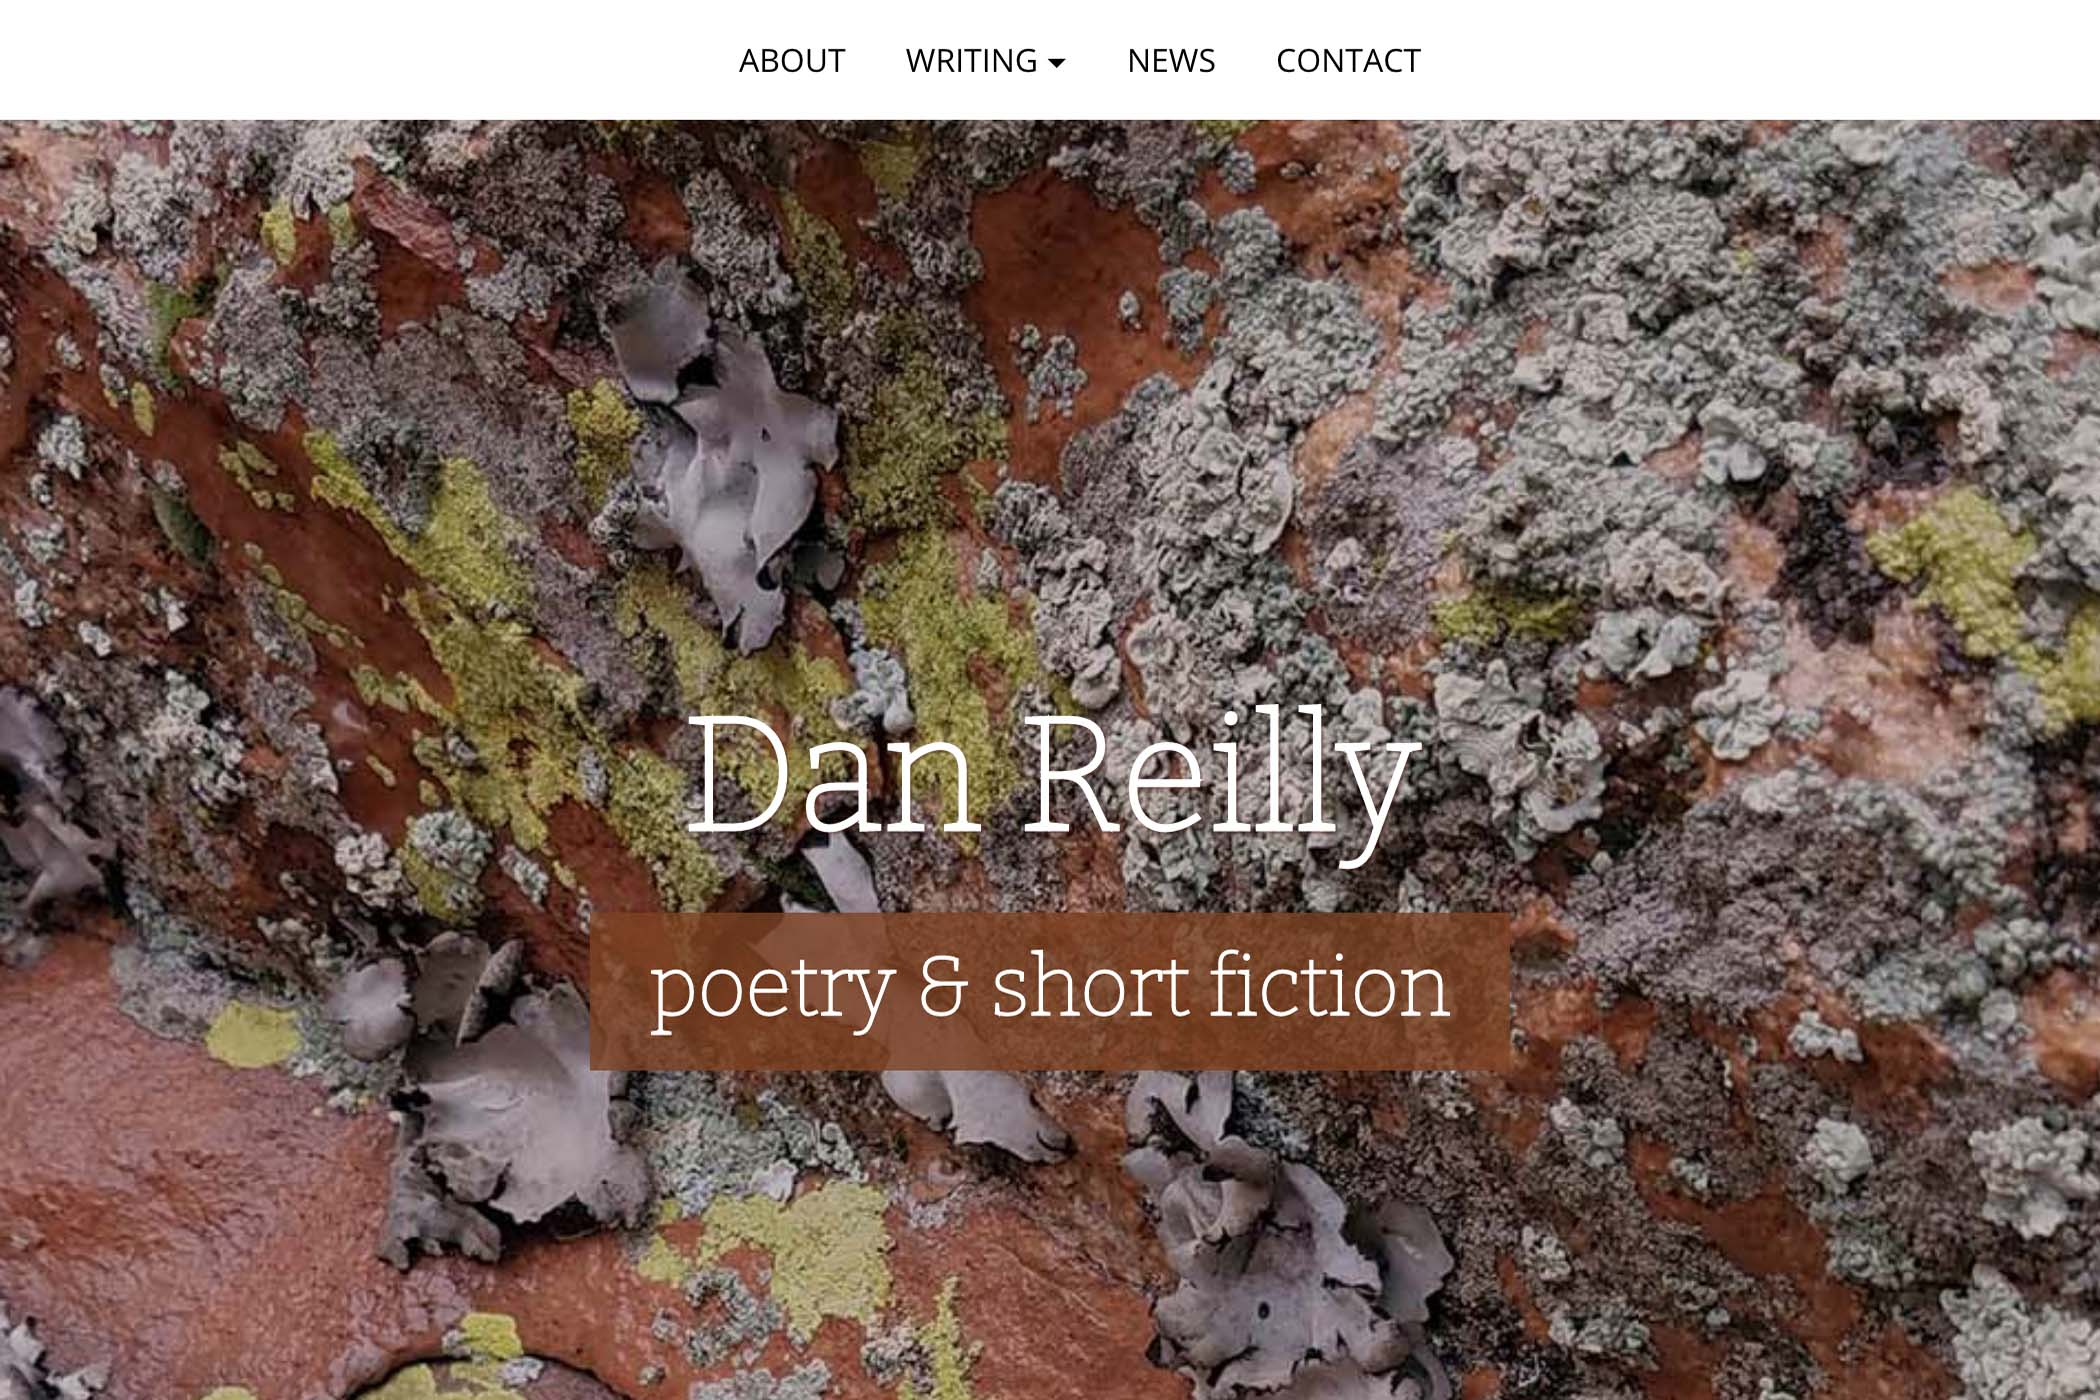 website design for a writer - homepage